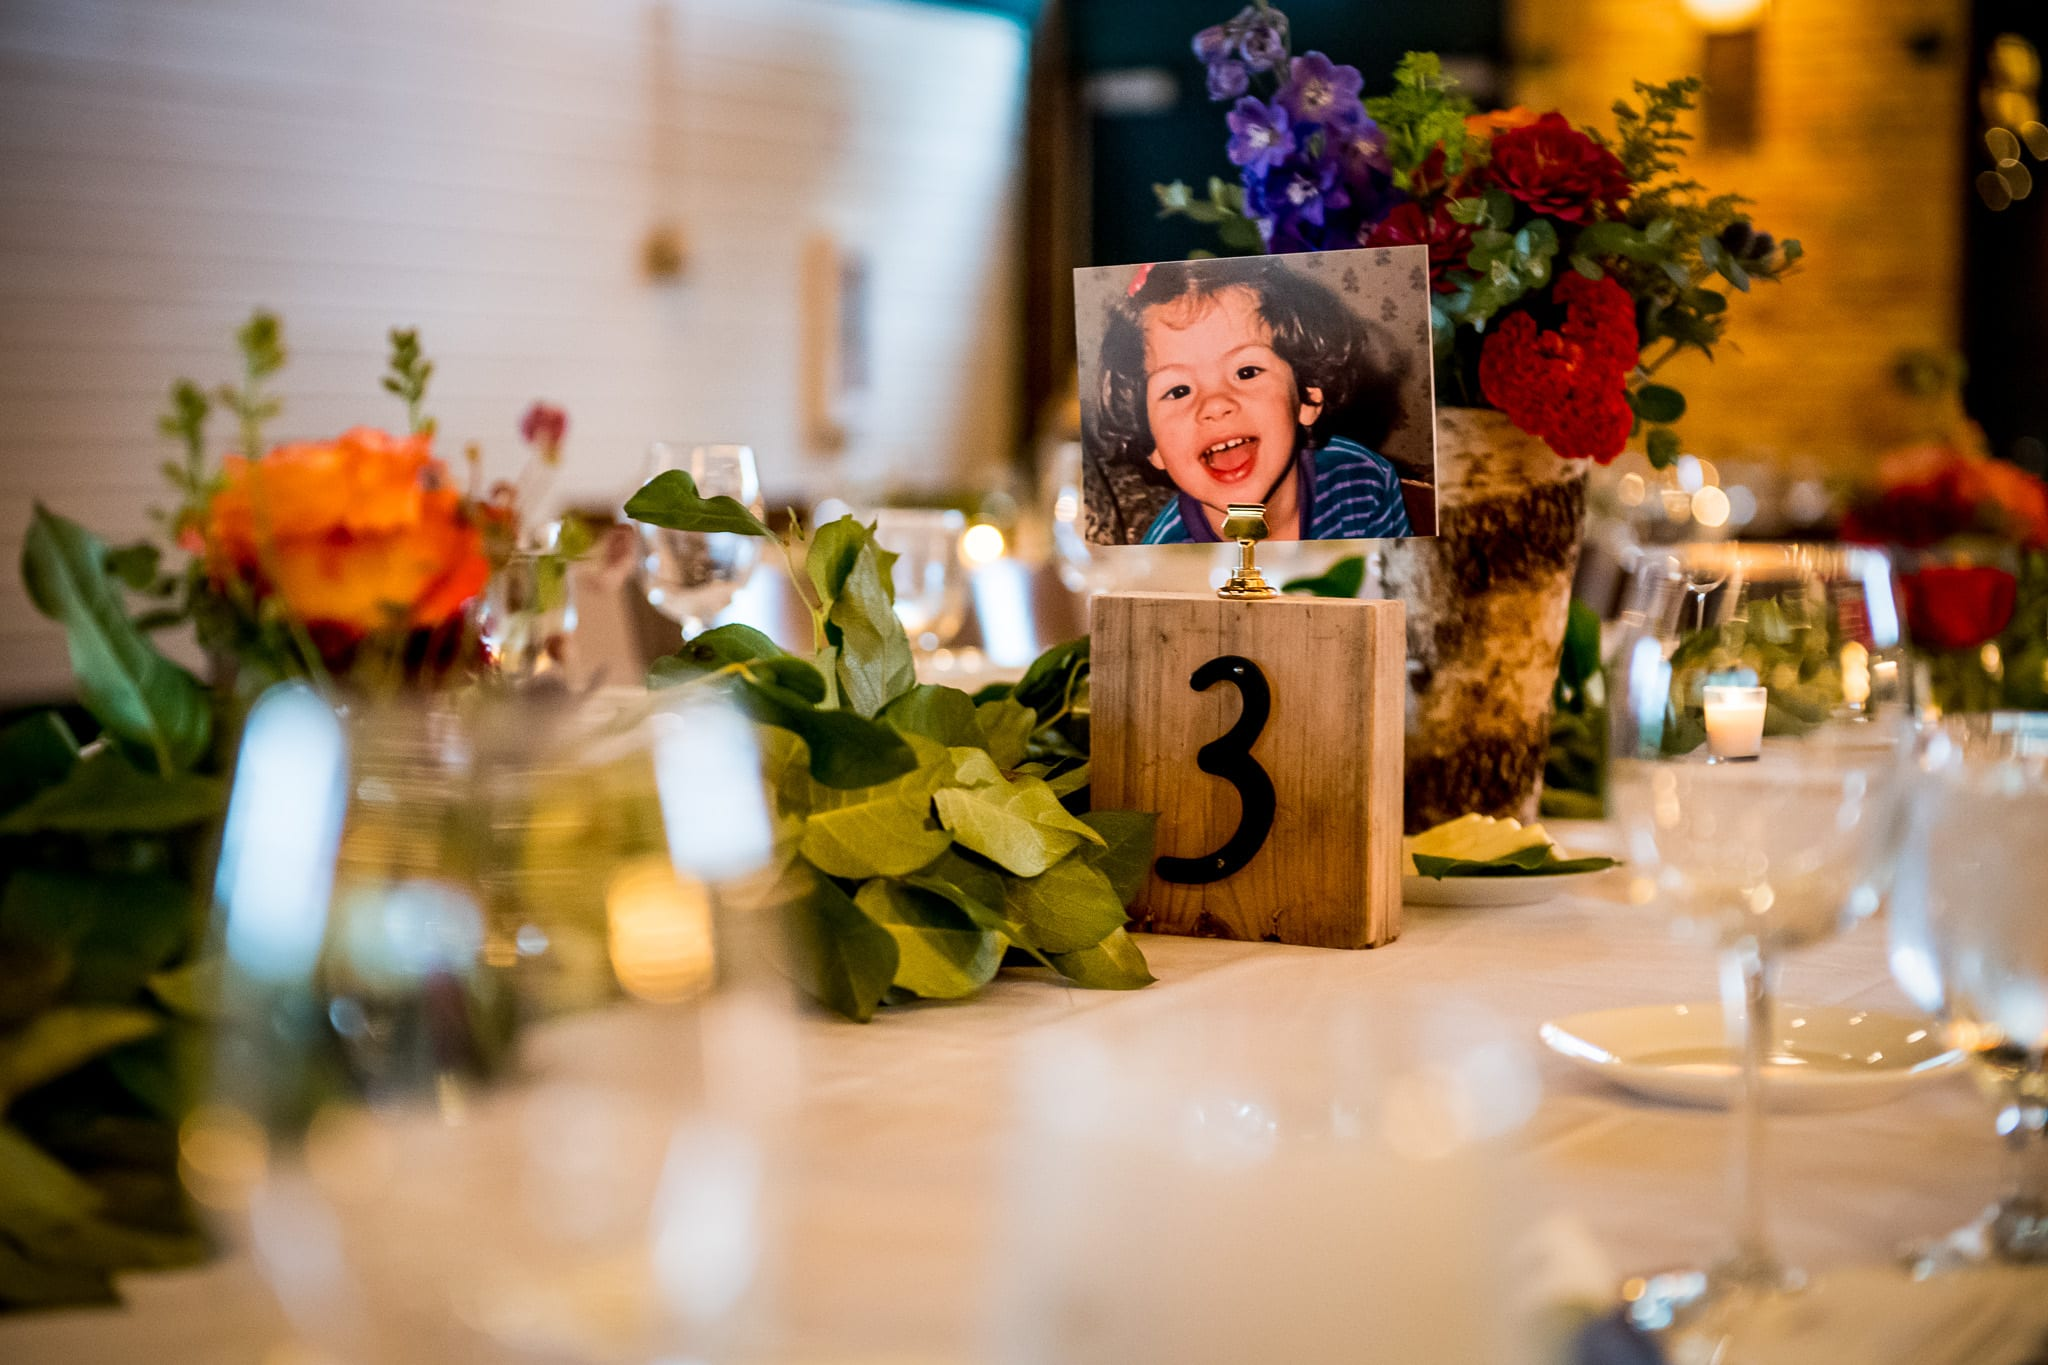 Unique table setting with table number centerpiece with photos of the bride when she was a little kid